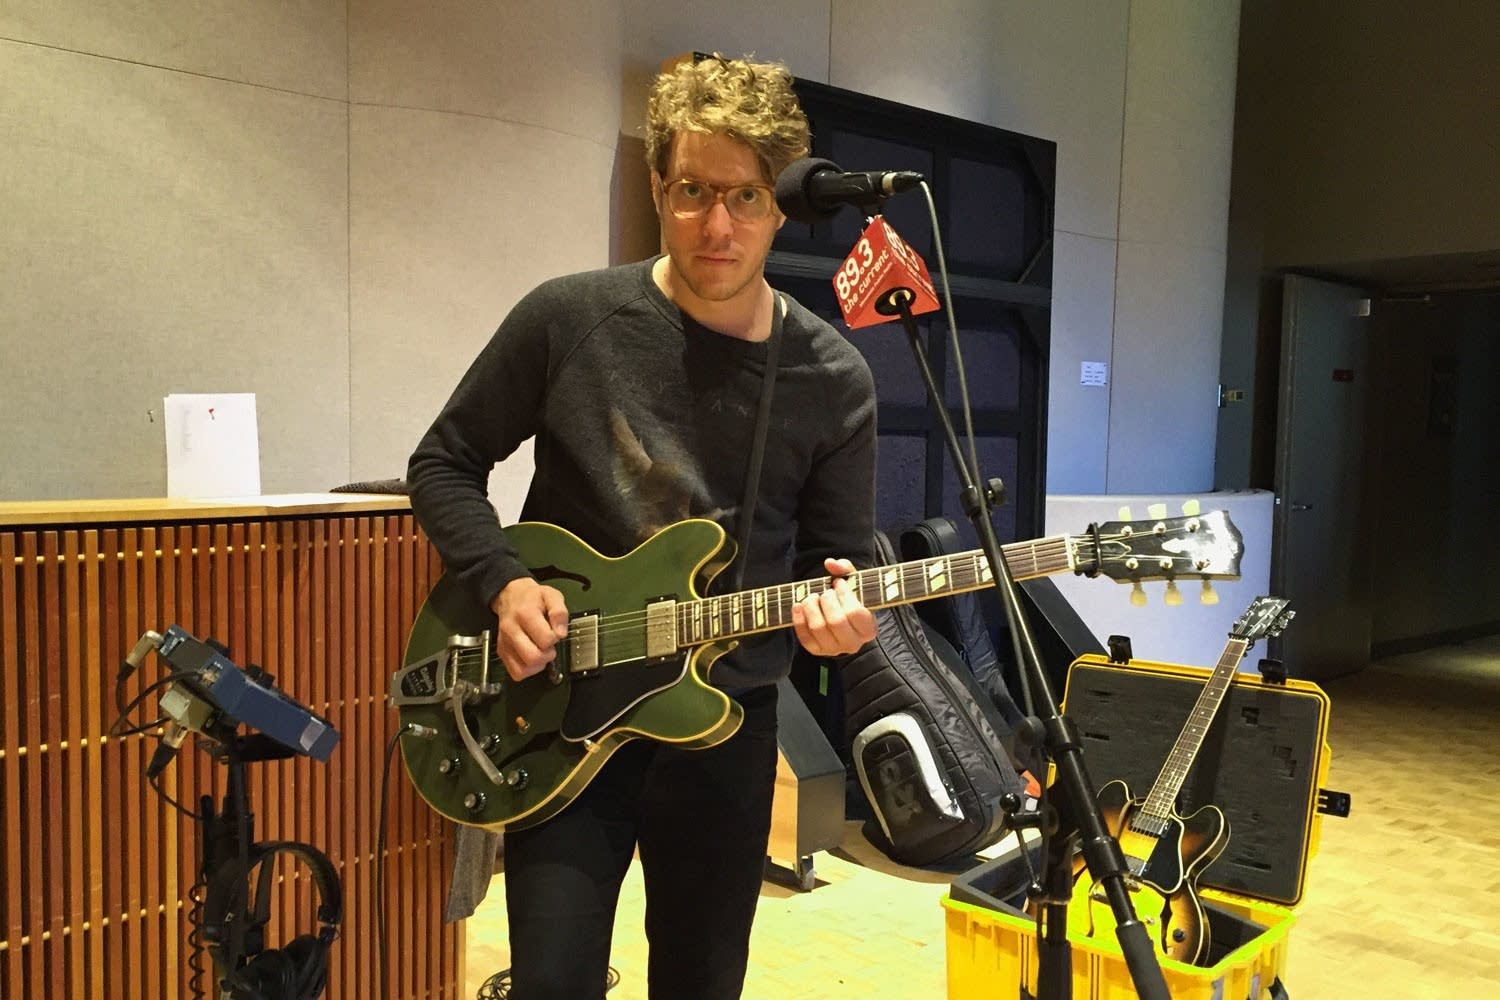 Anderson East performs in The Current studio